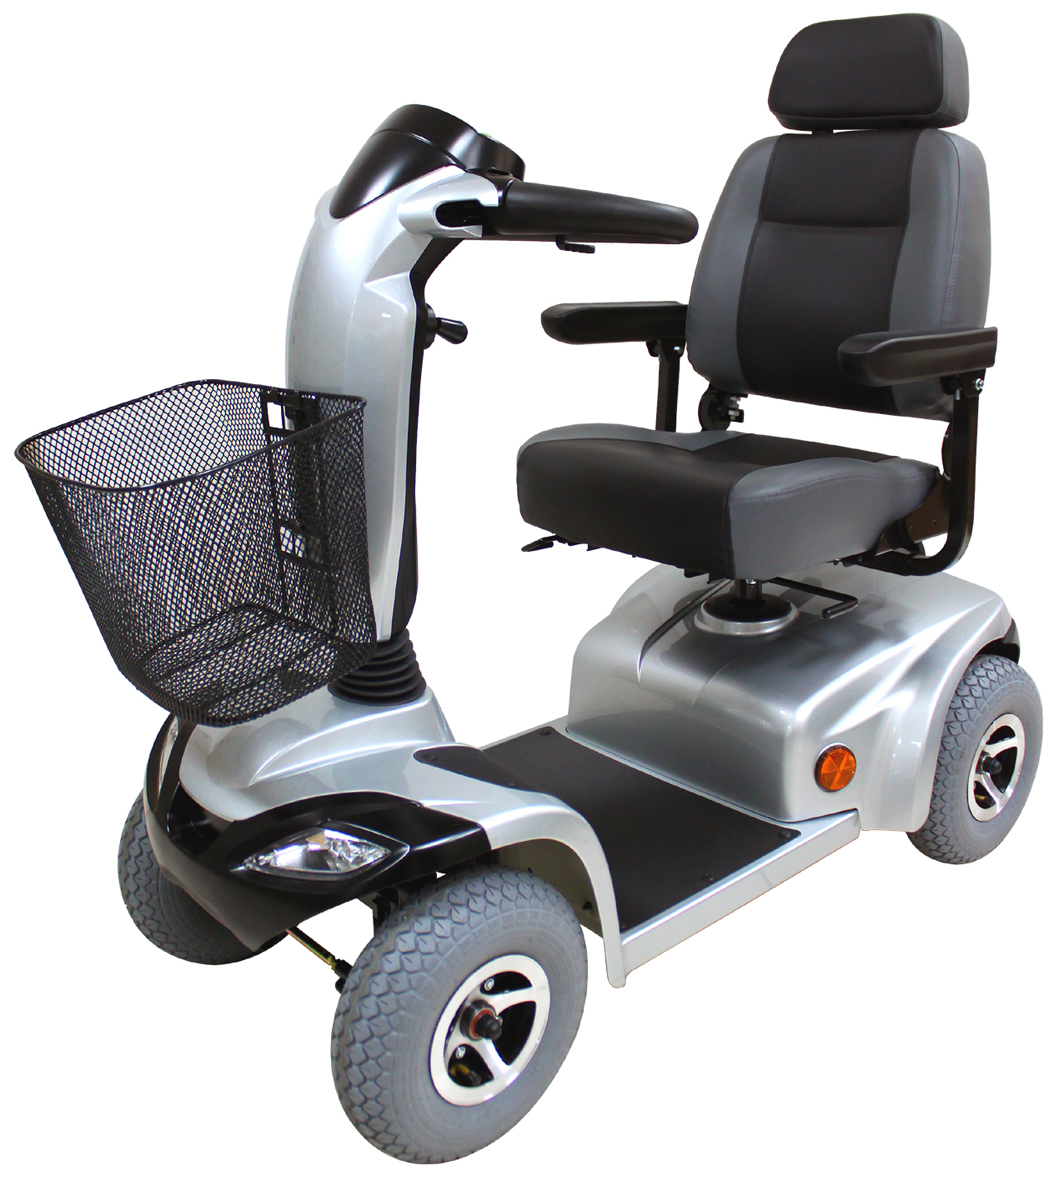 CTM HS 558 Mid Range Mobility Scooter